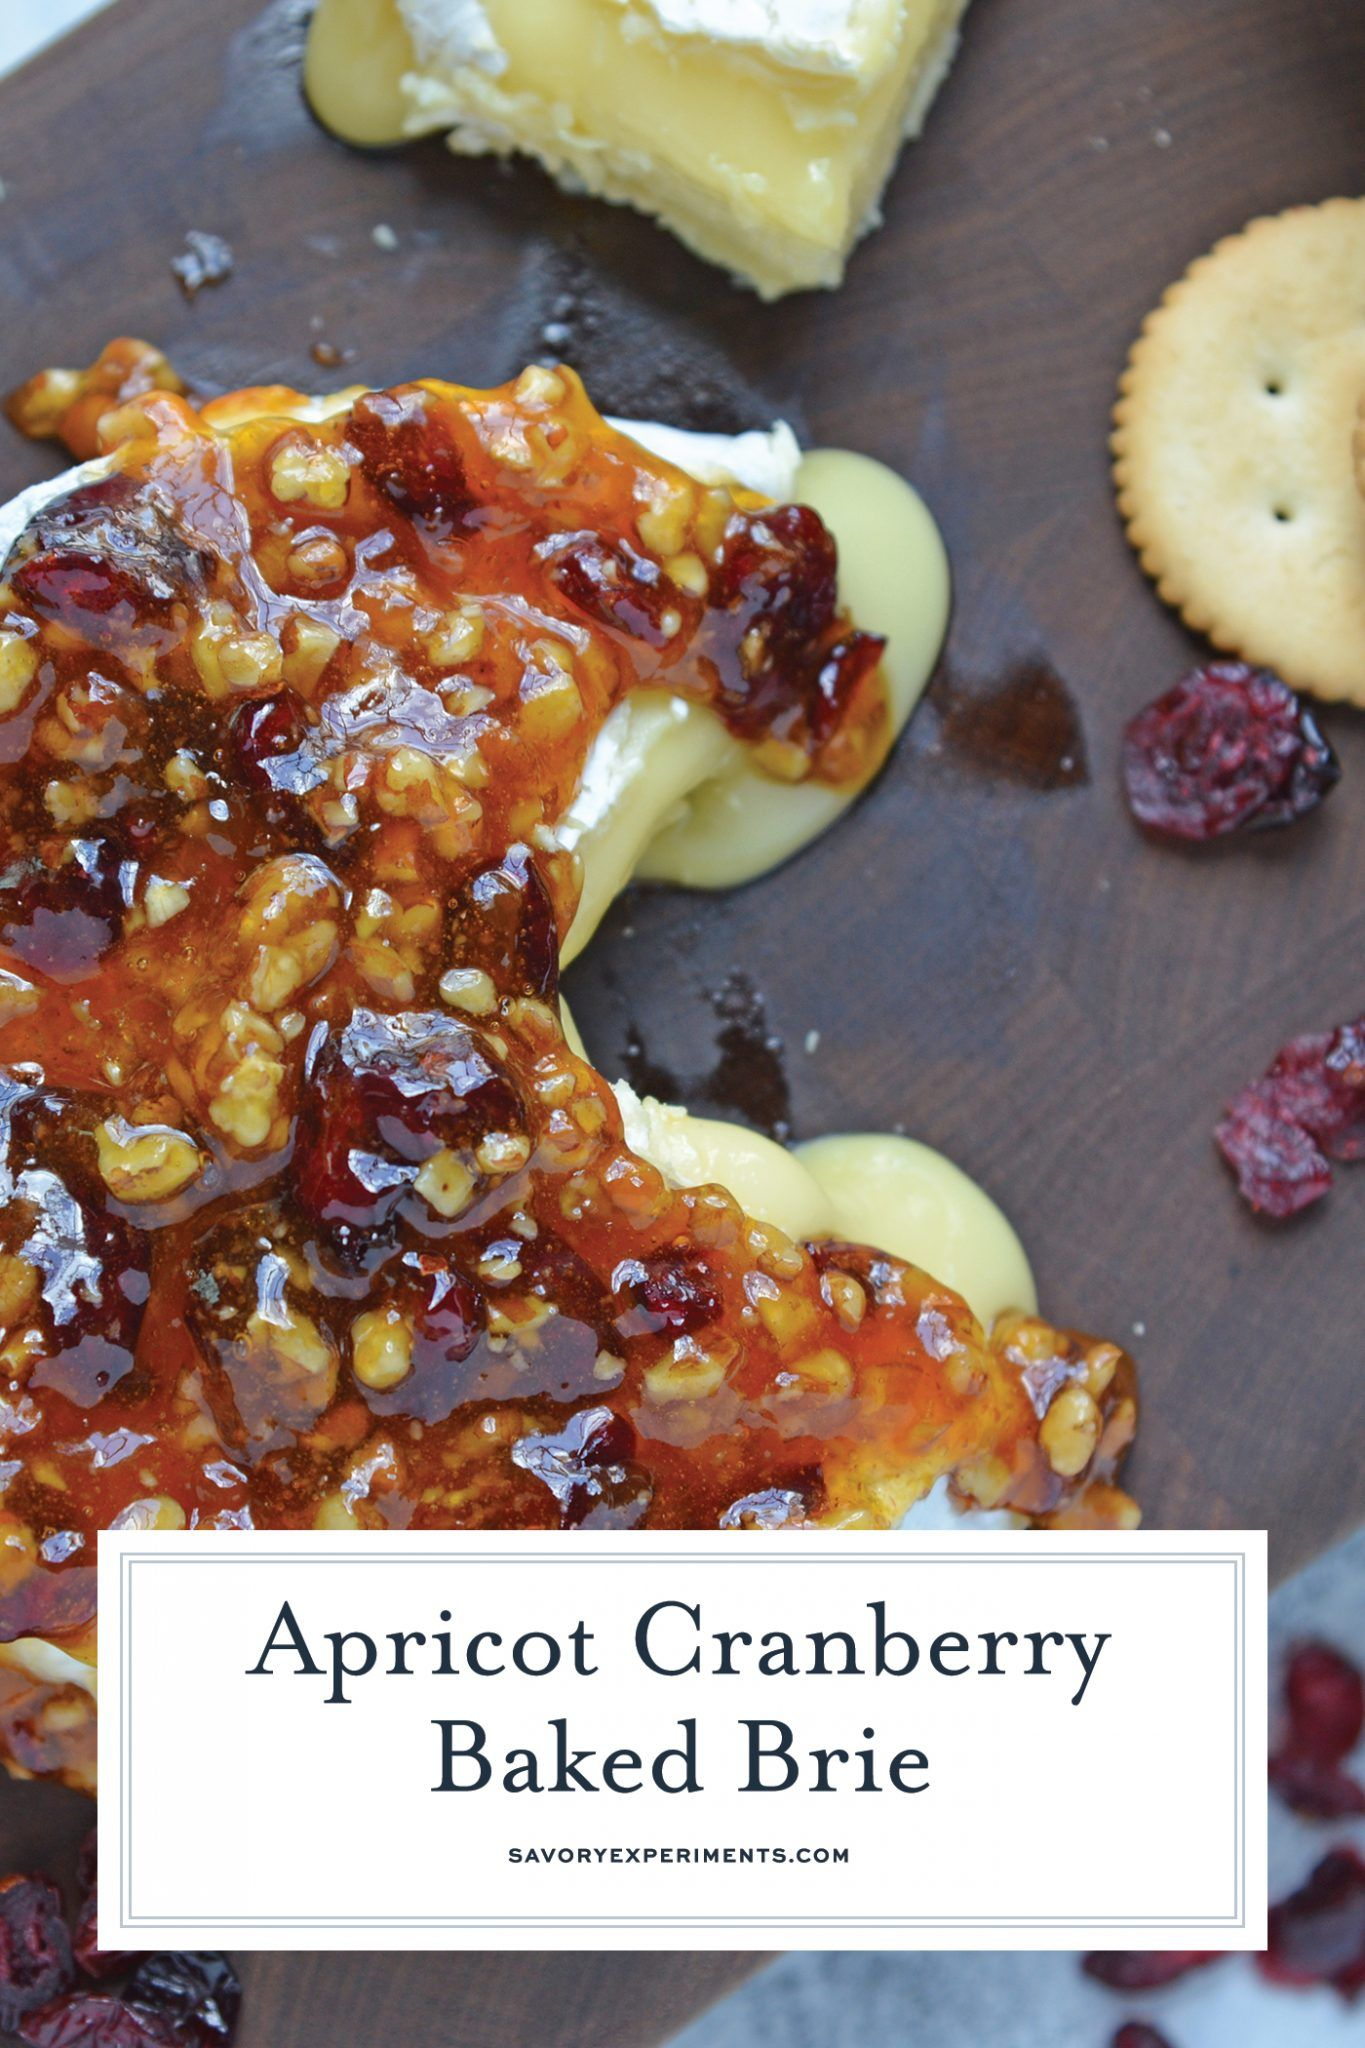 Apricot Cranberry Baked Brie - The Best Baked Brie Recipe